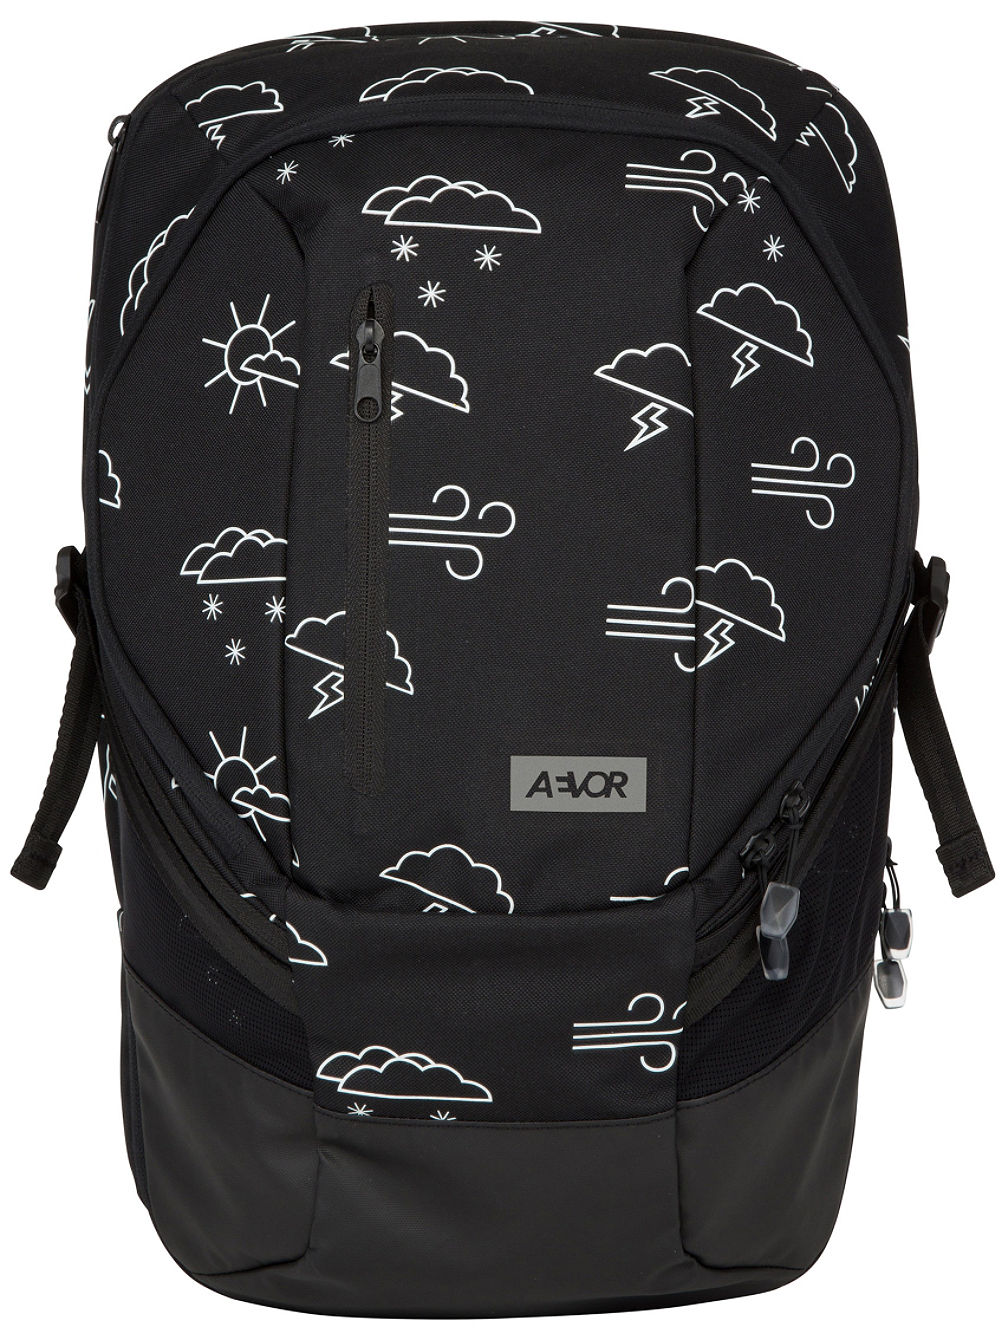 aevor-sportsback-backpack